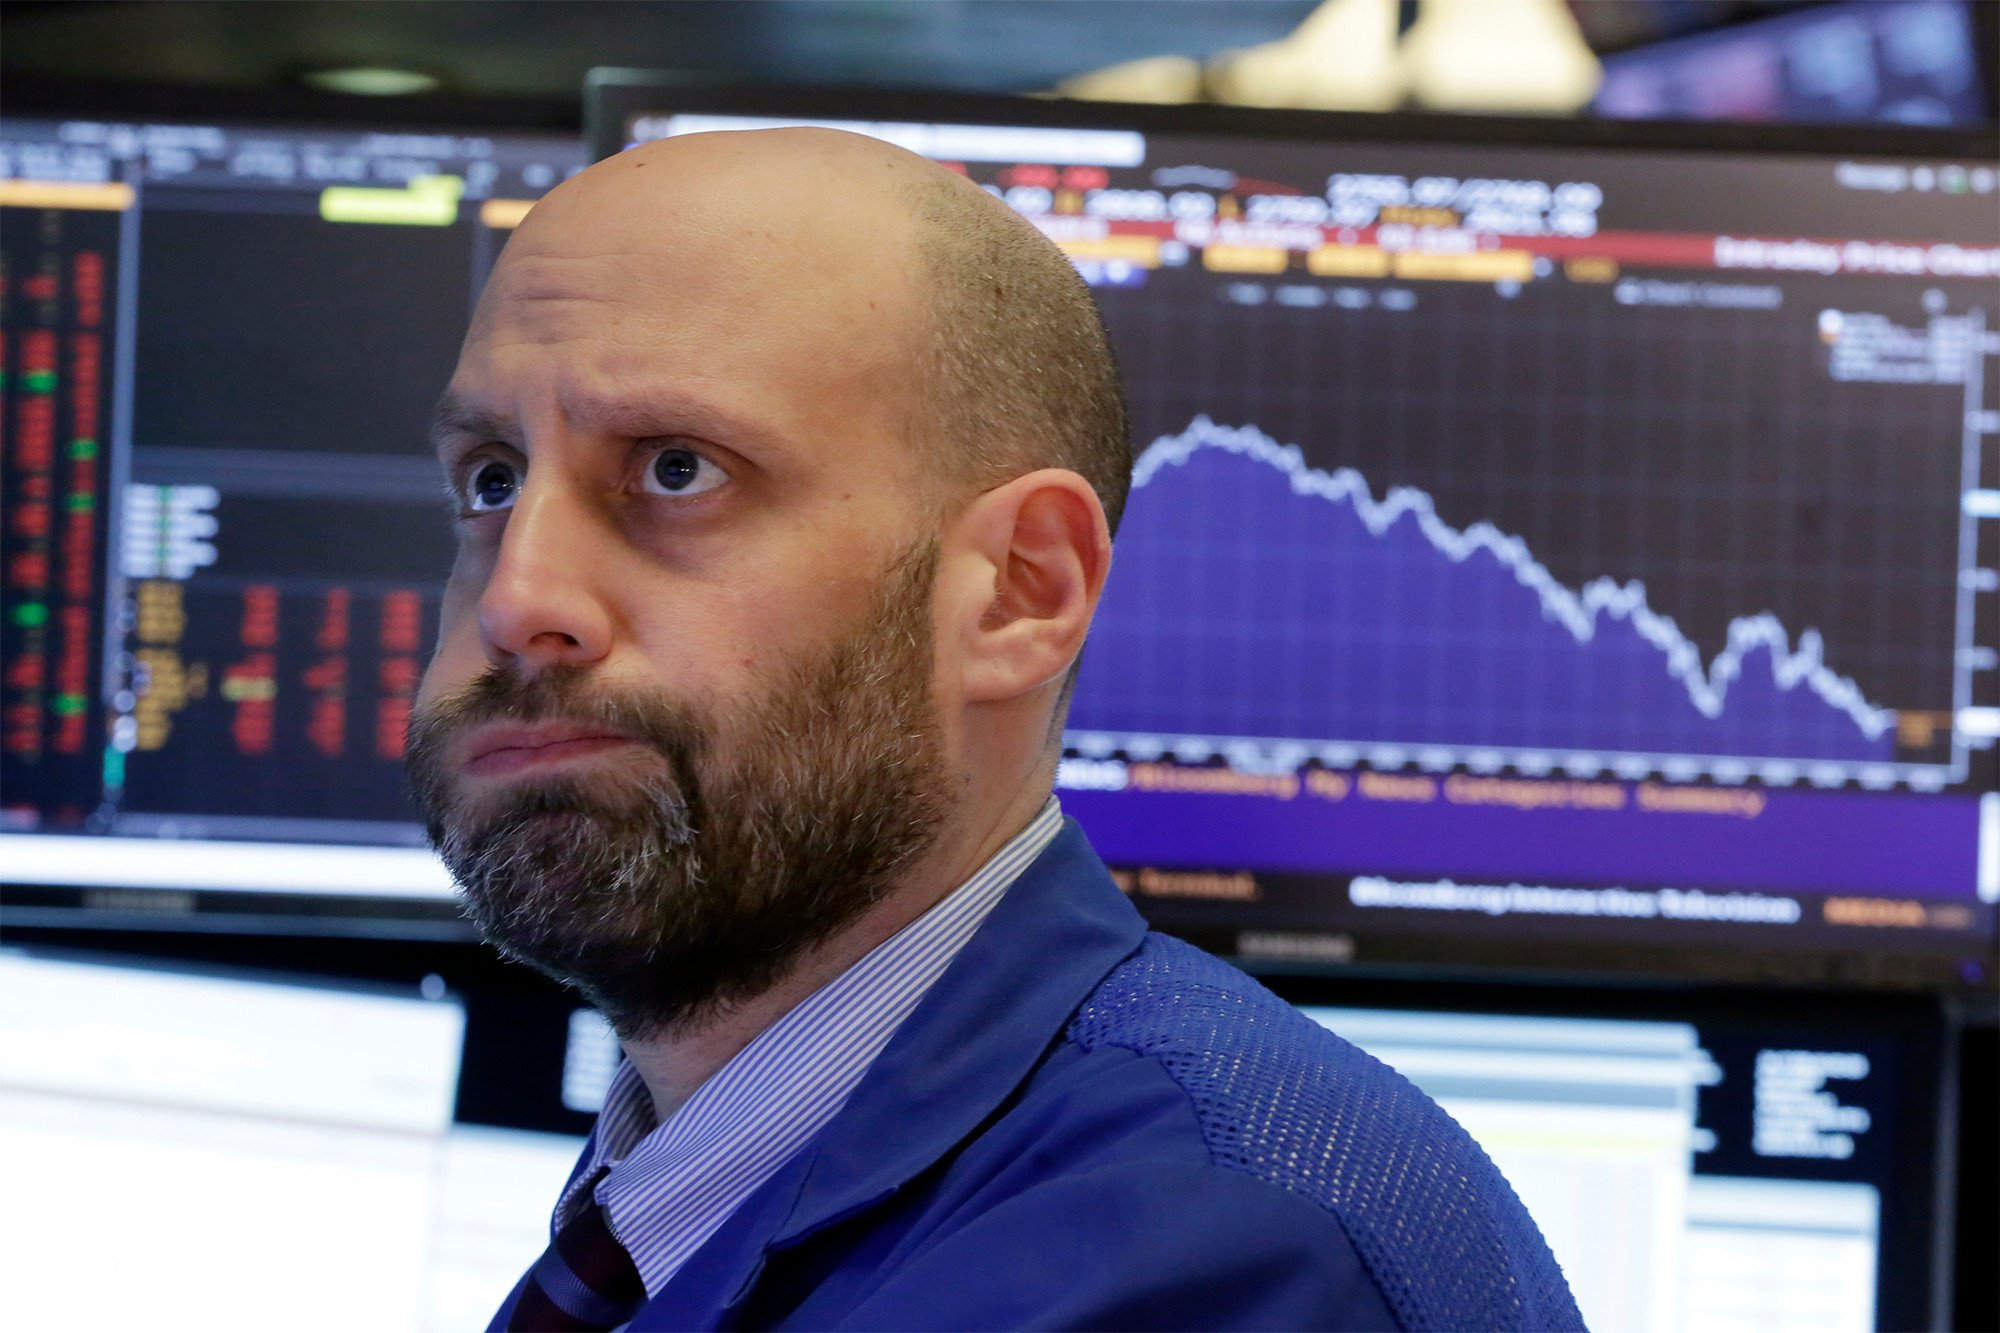 Dow drops more than 1,500 points as stock slide deepens